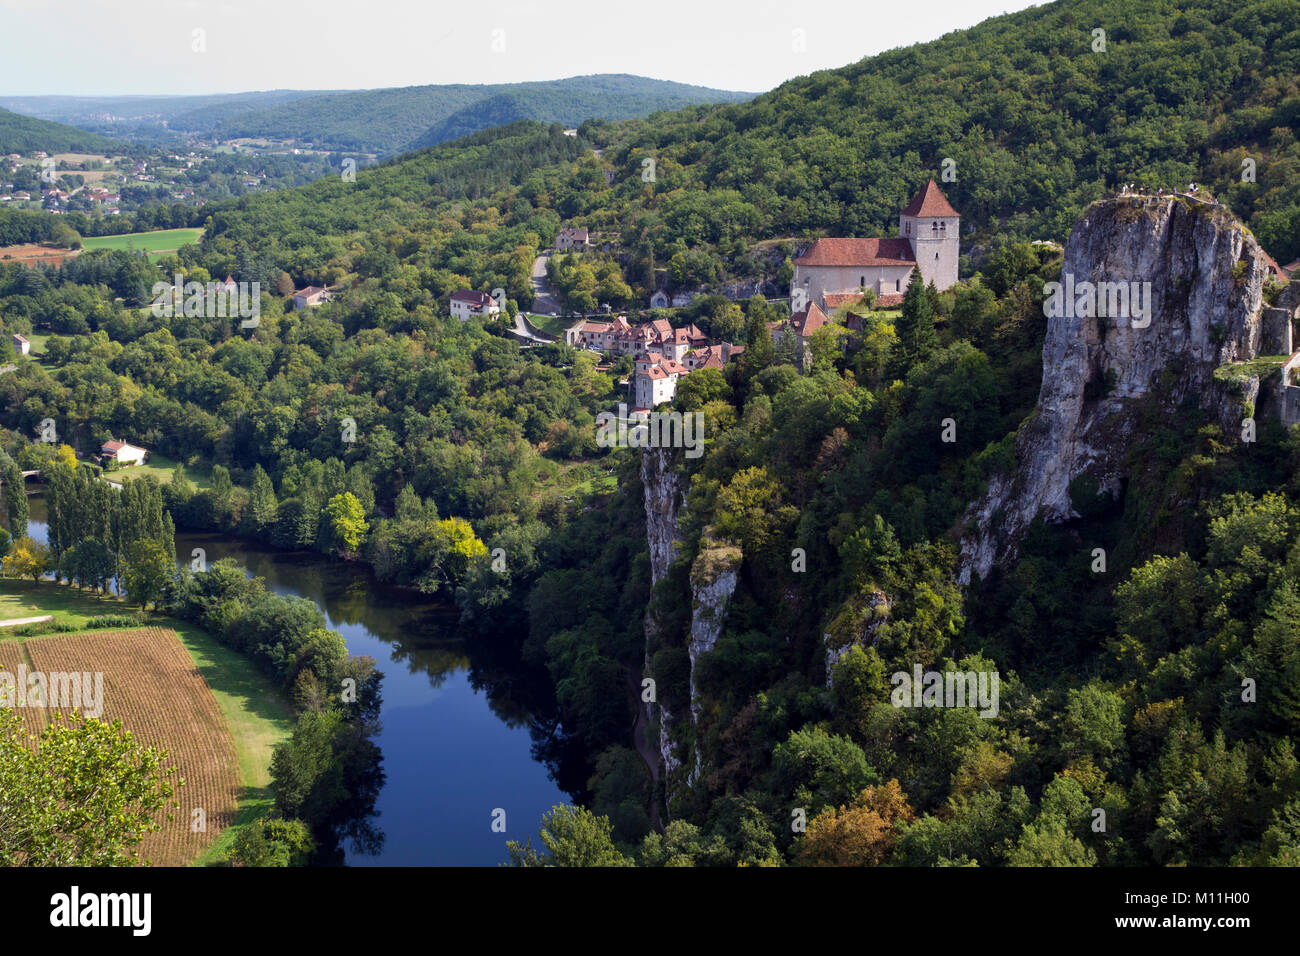 View of historic St Cirq Lapopie and the River Lot,The Lot, Midi Pyrenees, France, Europe - Stock Image